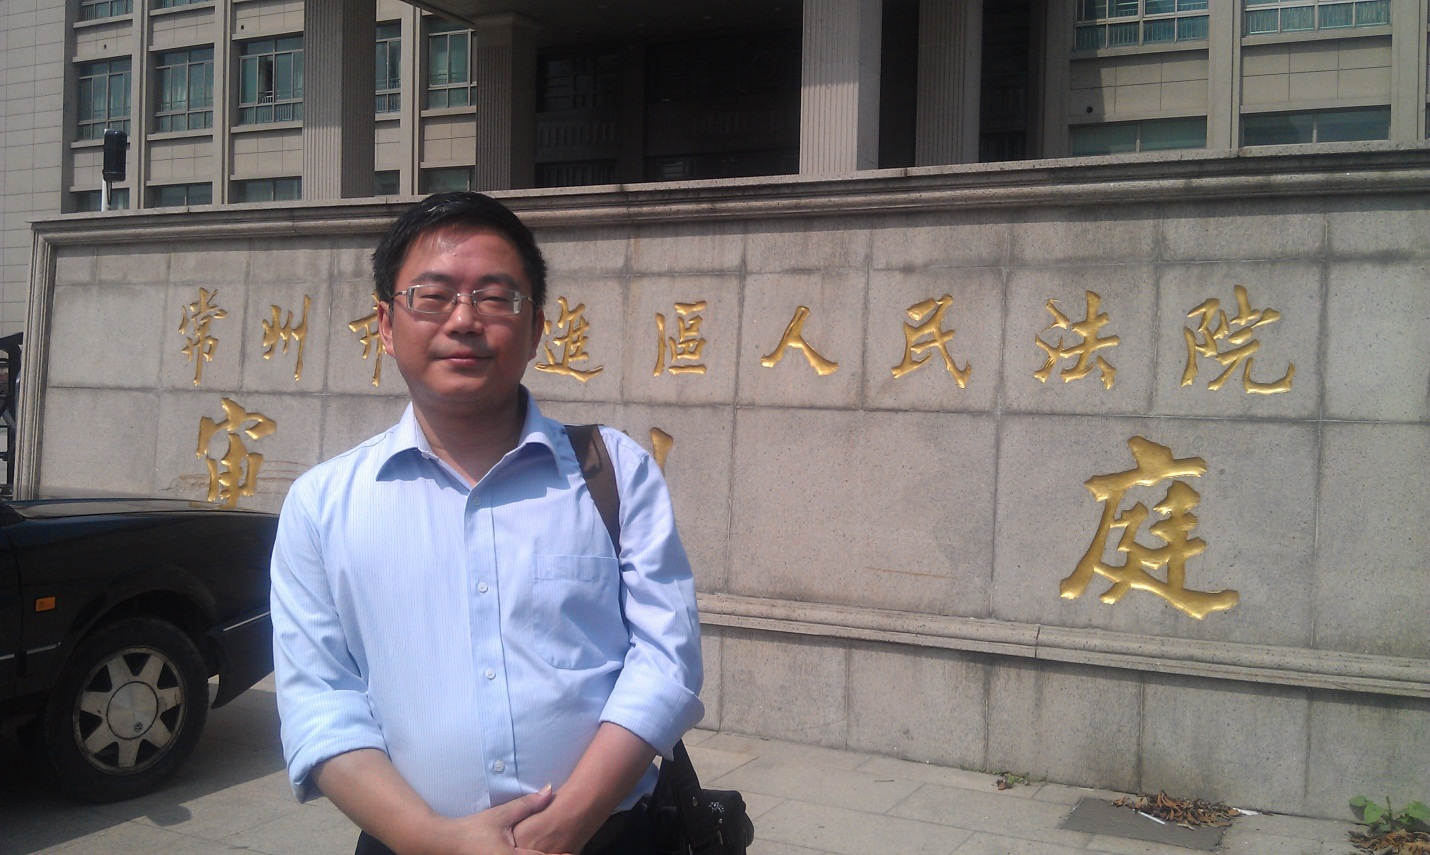 Zheng Jianwei outside Changzhou Wujin District Court, Jiangsu Province. Changzhou, May 2012.  Photo credit: Zheng Jianwei.